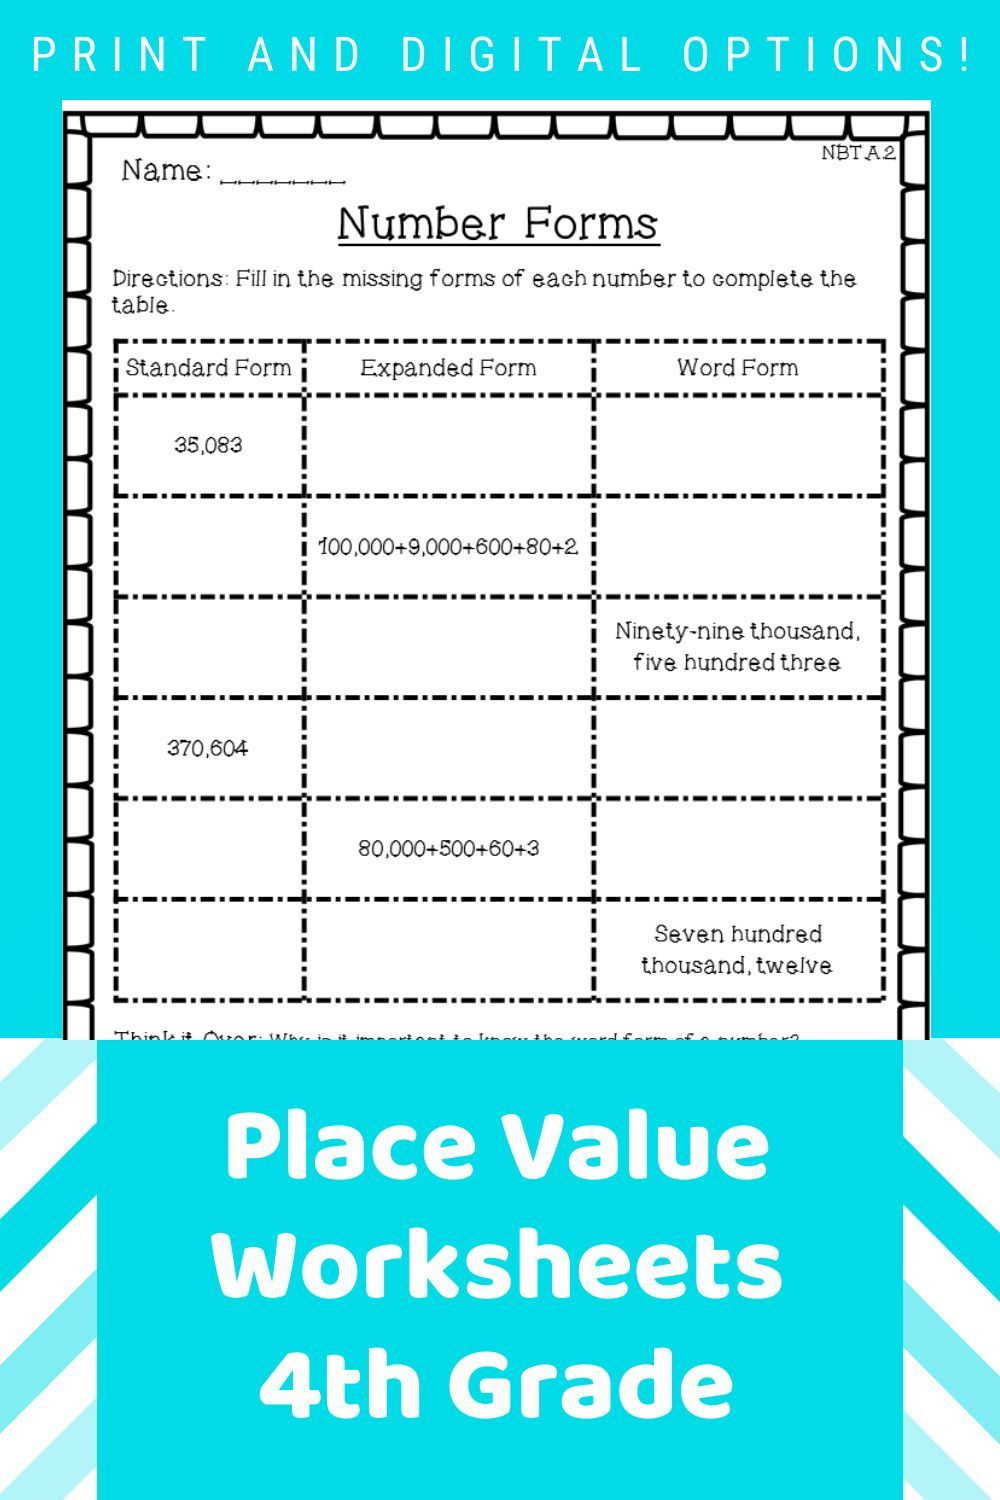 hight resolution of 4th Grade Place Value Worksheets ~ Distance Learning Digital Option   Place  value worksheets